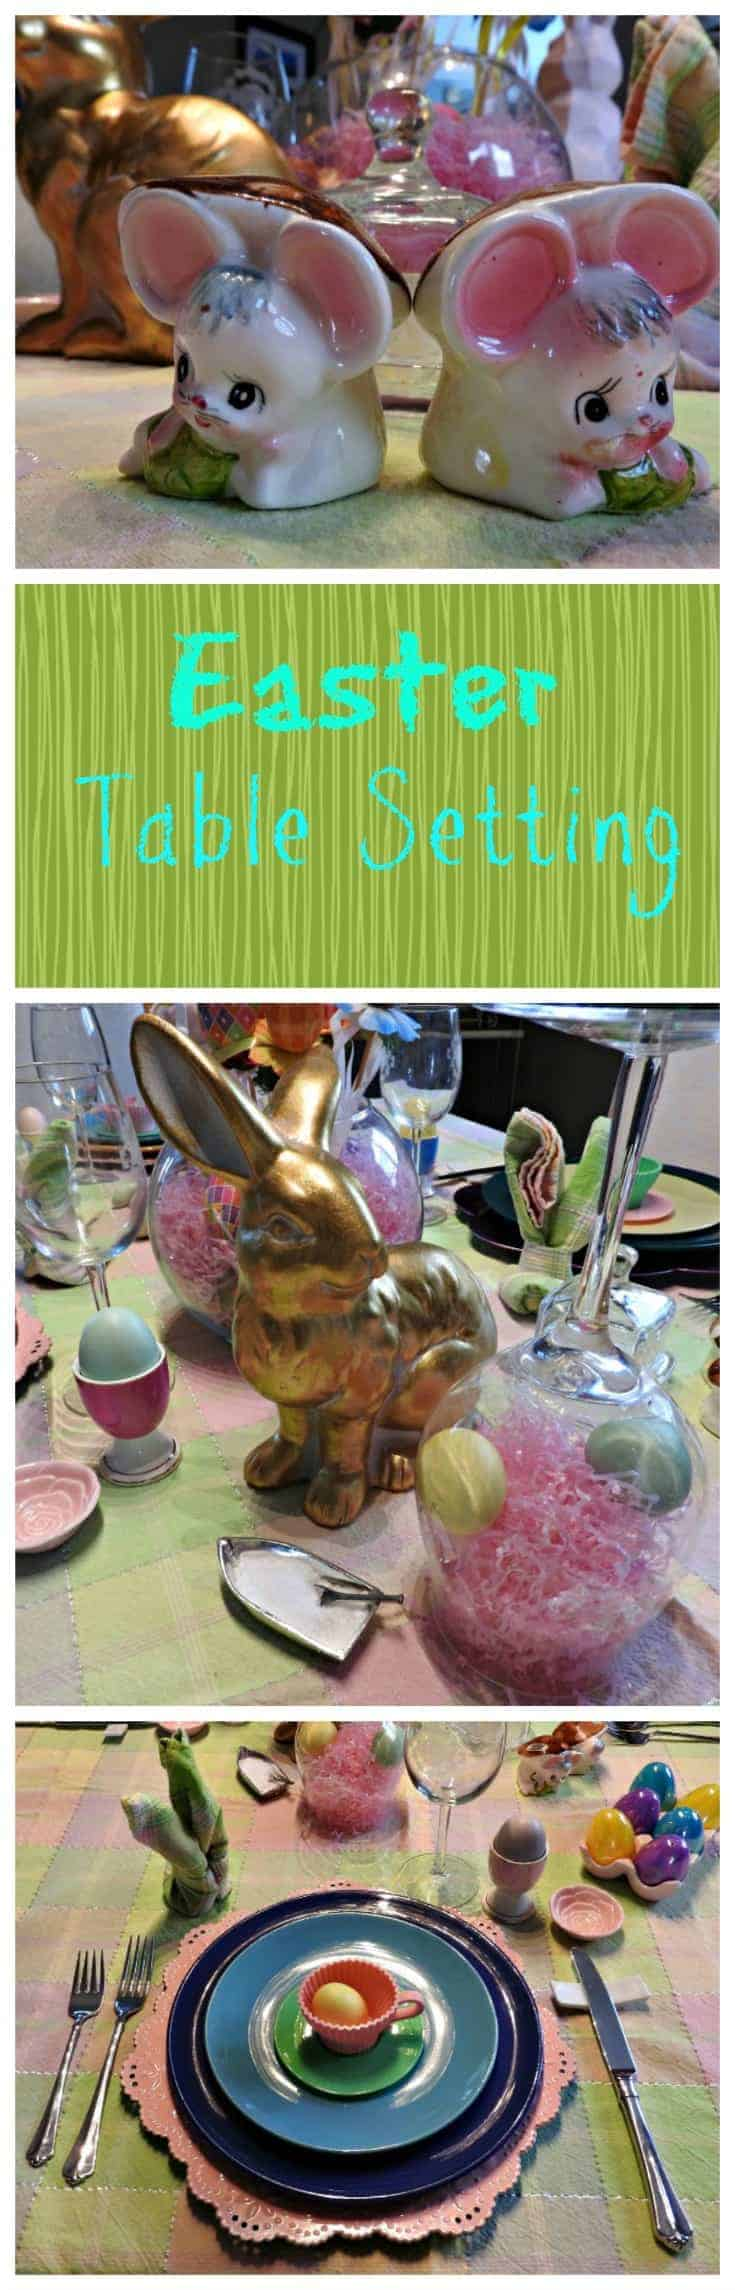 Easter Table Setting with pastels and bunnies